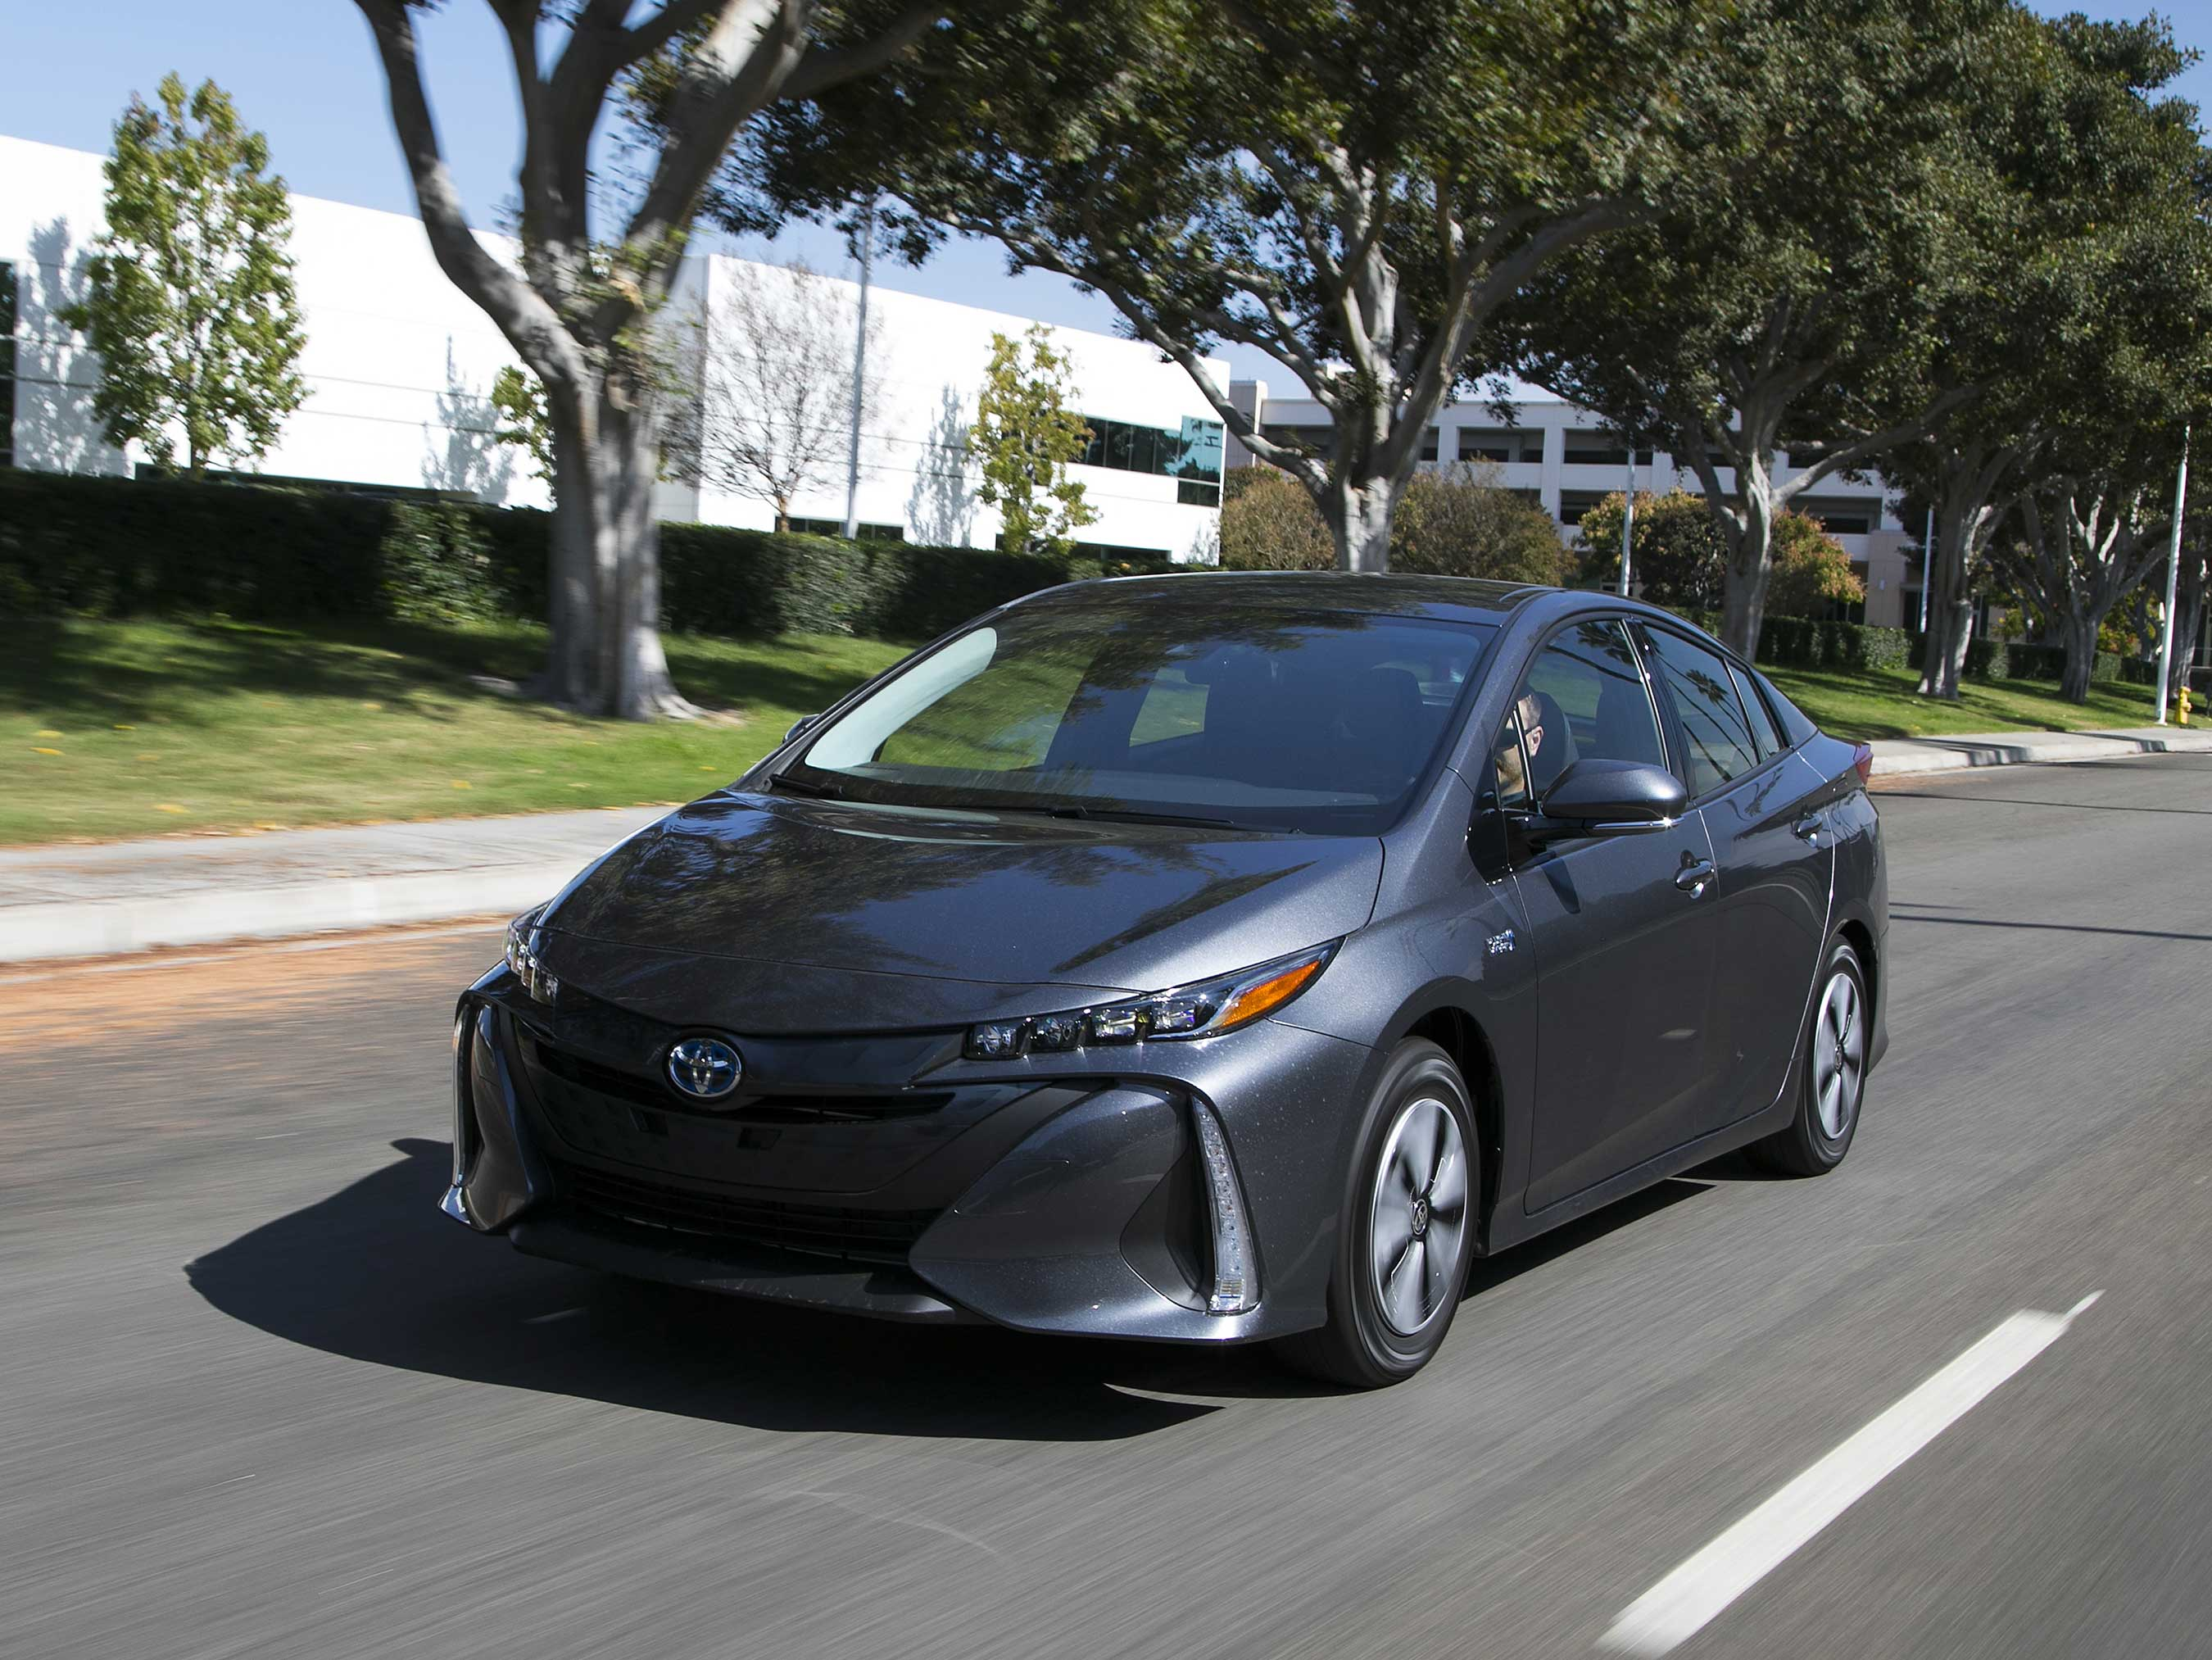 Kelley blue book announces winners of 2017 best buy awards honda civic repeats win as overall best buy of the year